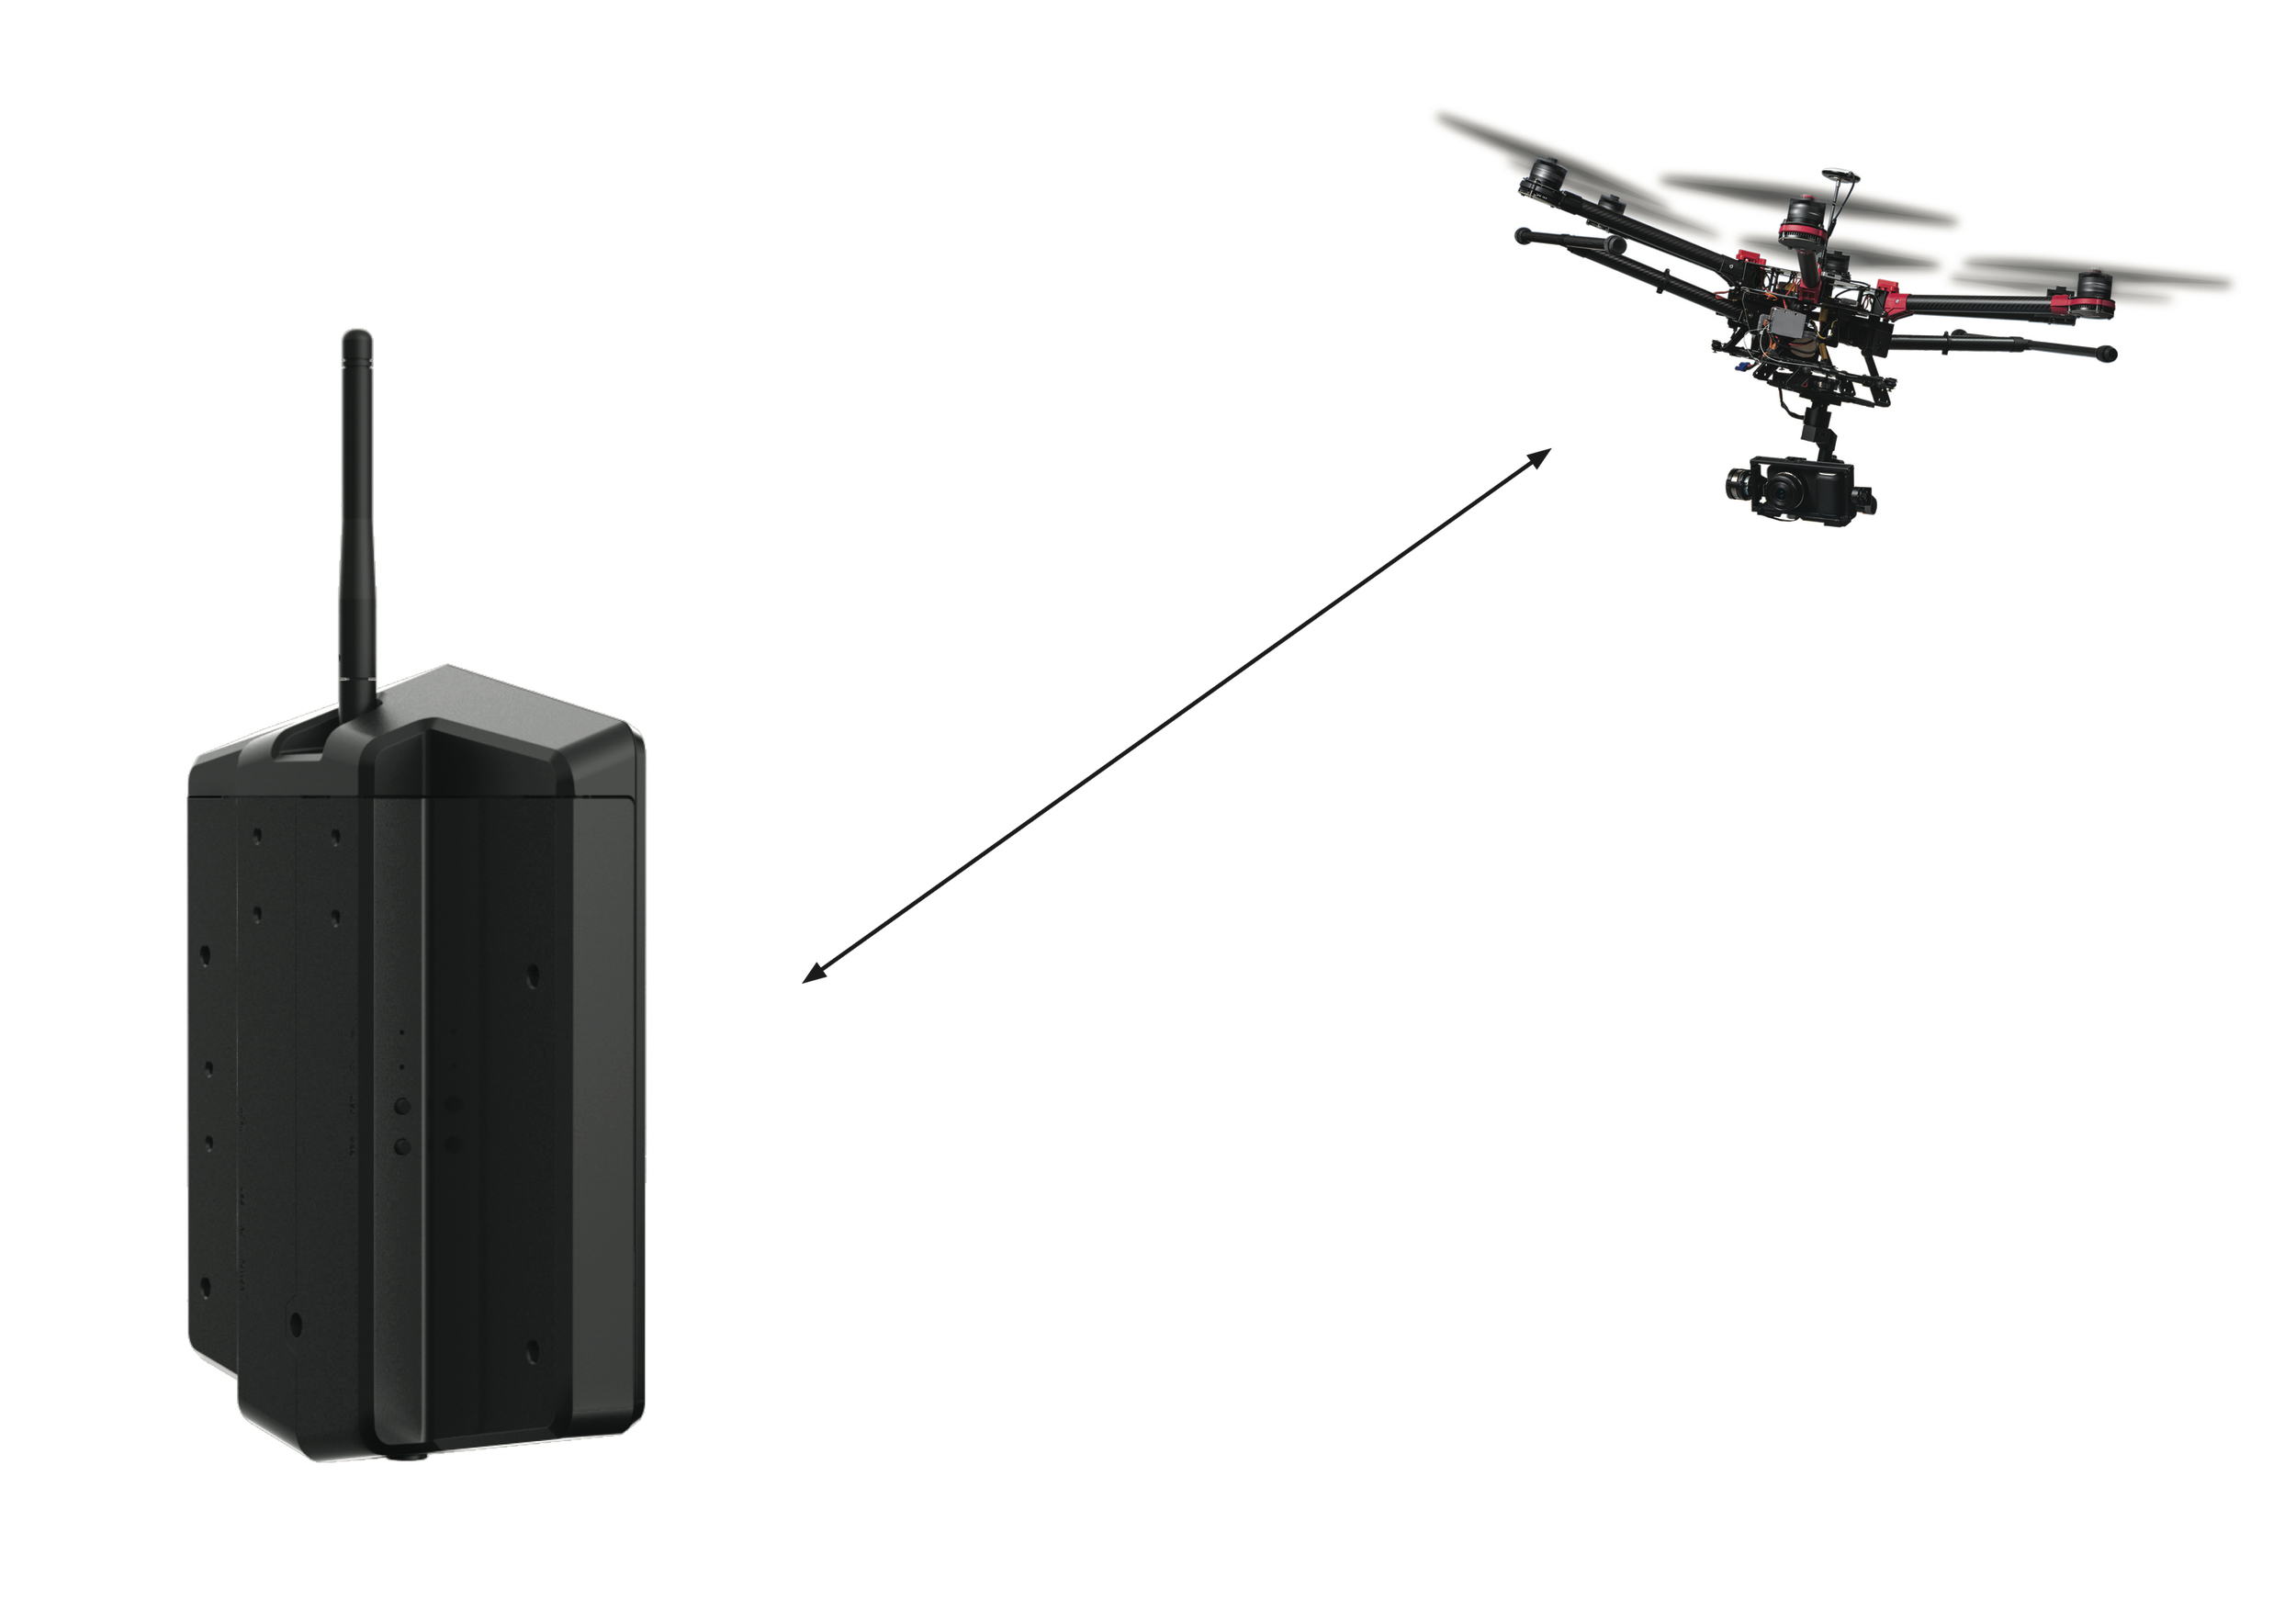 Antennas Facing the Drone